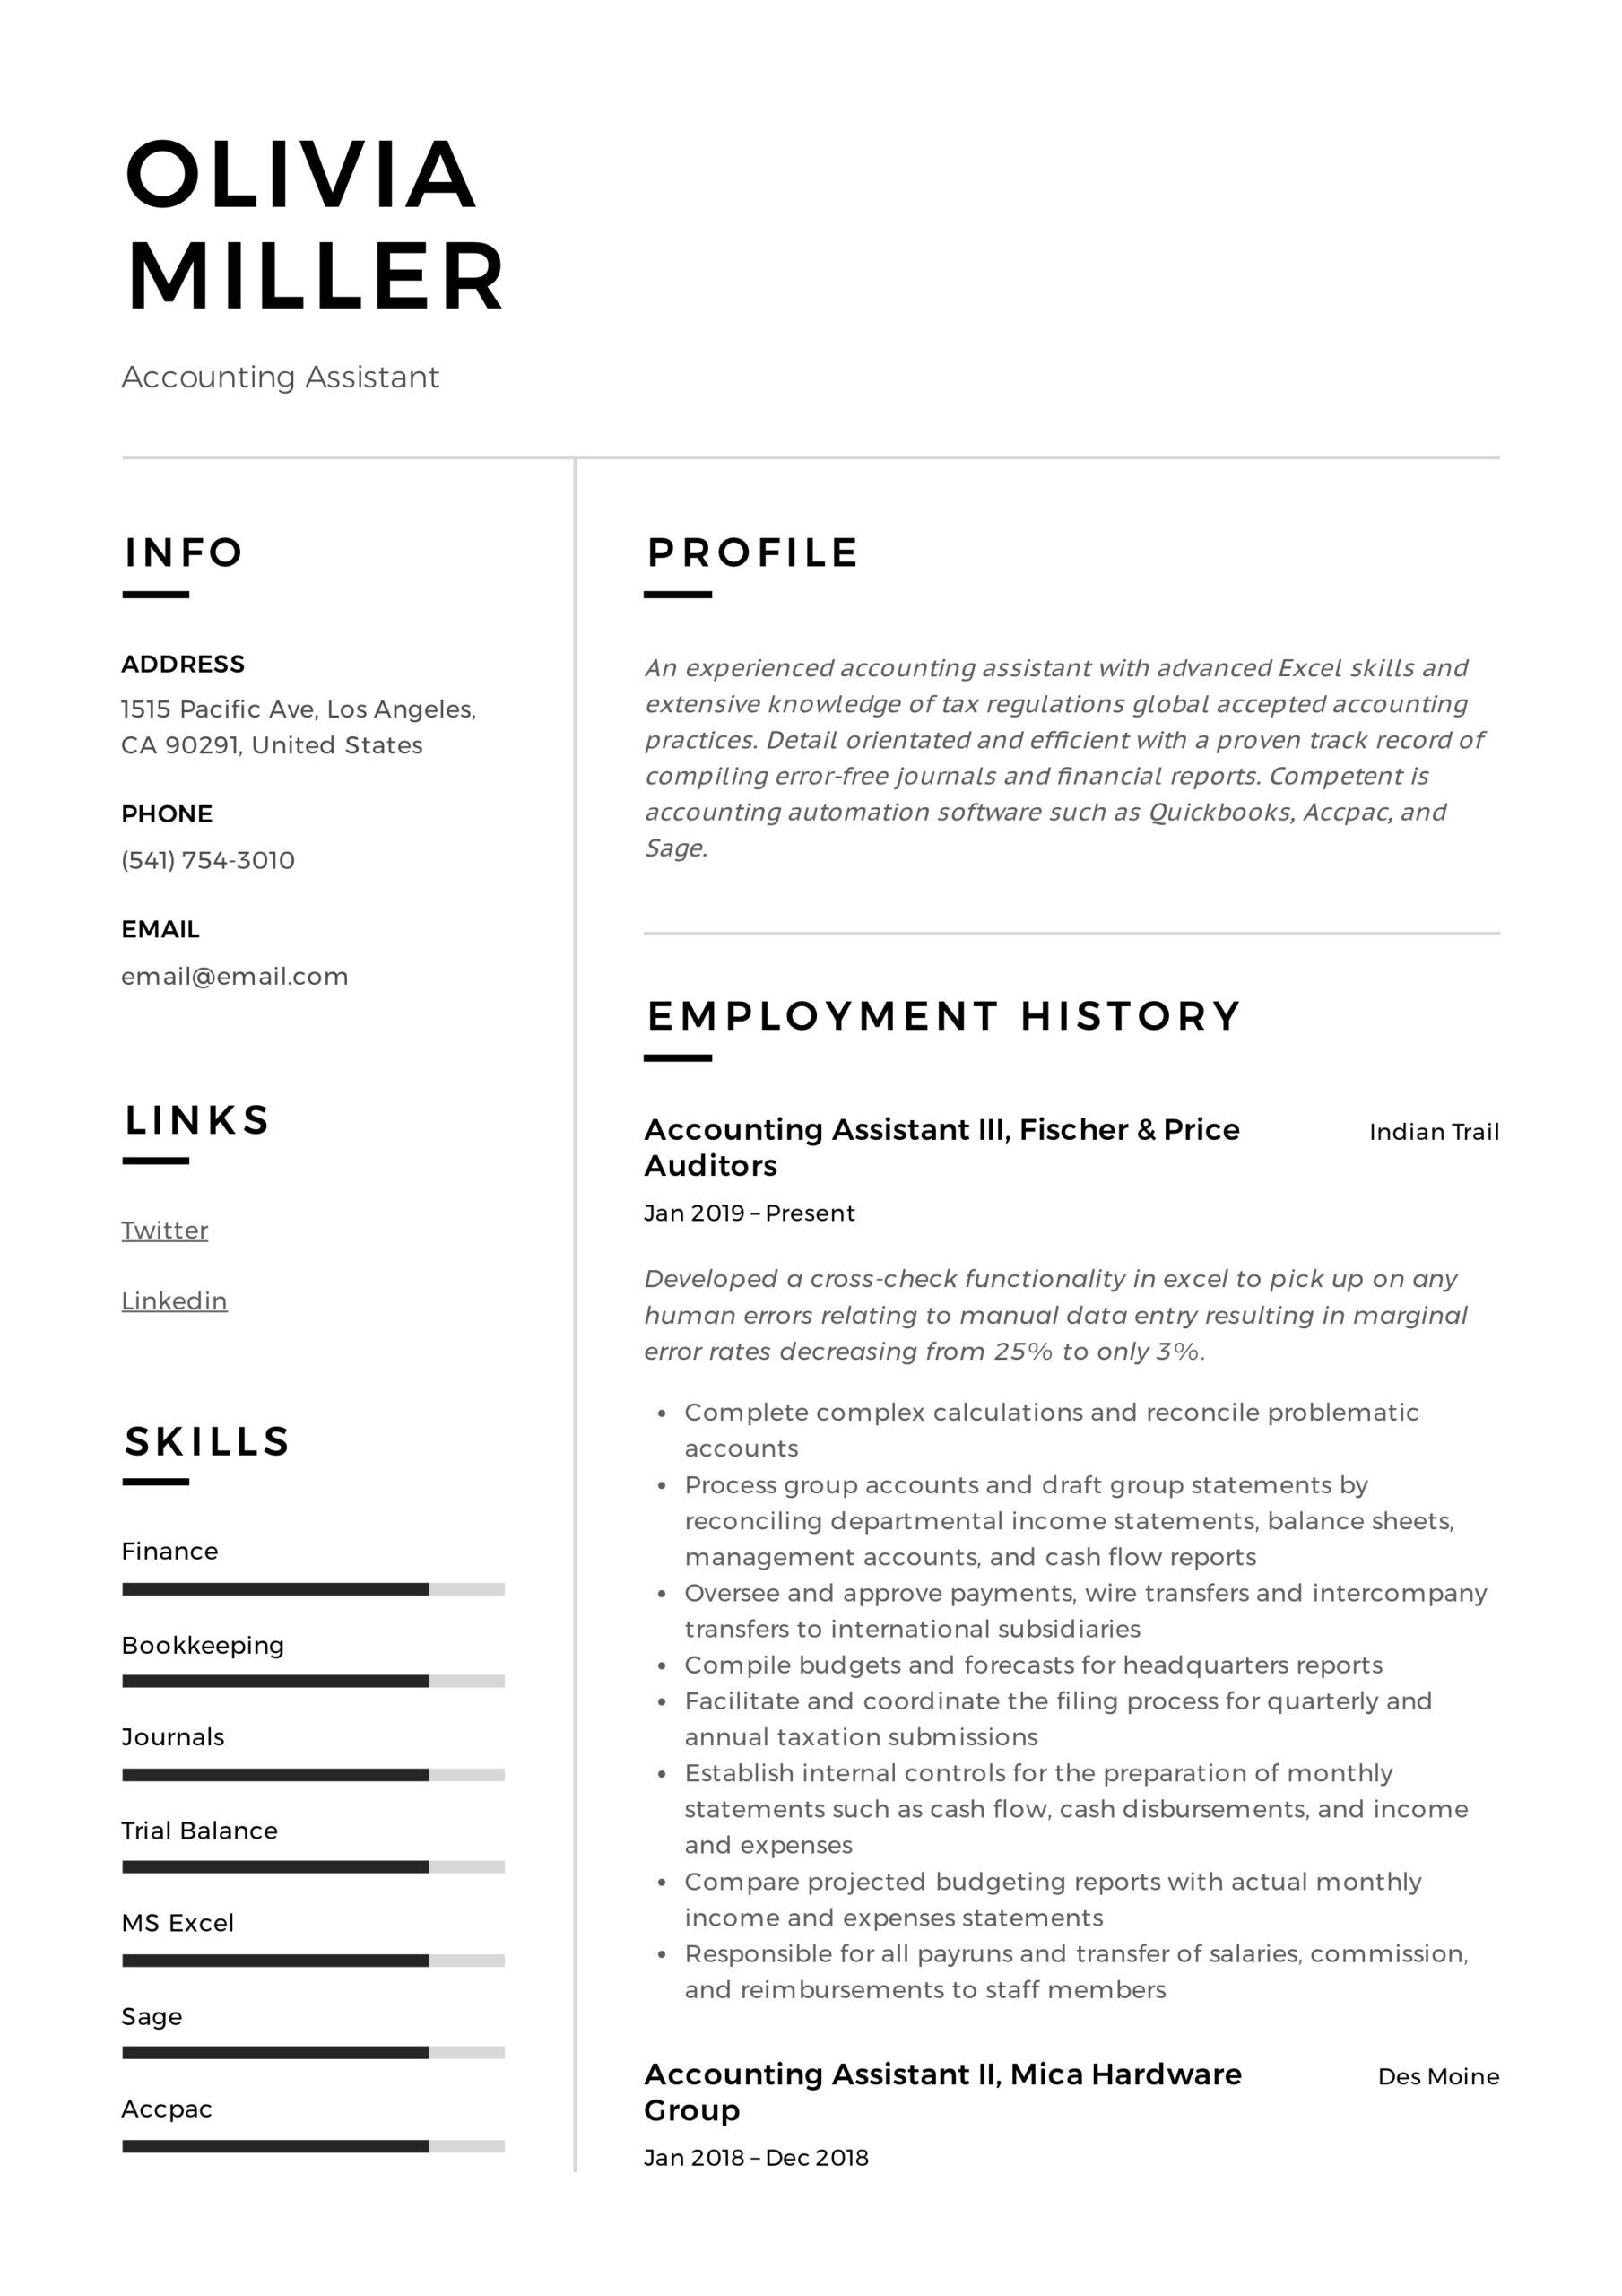 accounting assistant resume writing guide examples pdf account clerk job description for Resume Account Clerk Job Description For Resume